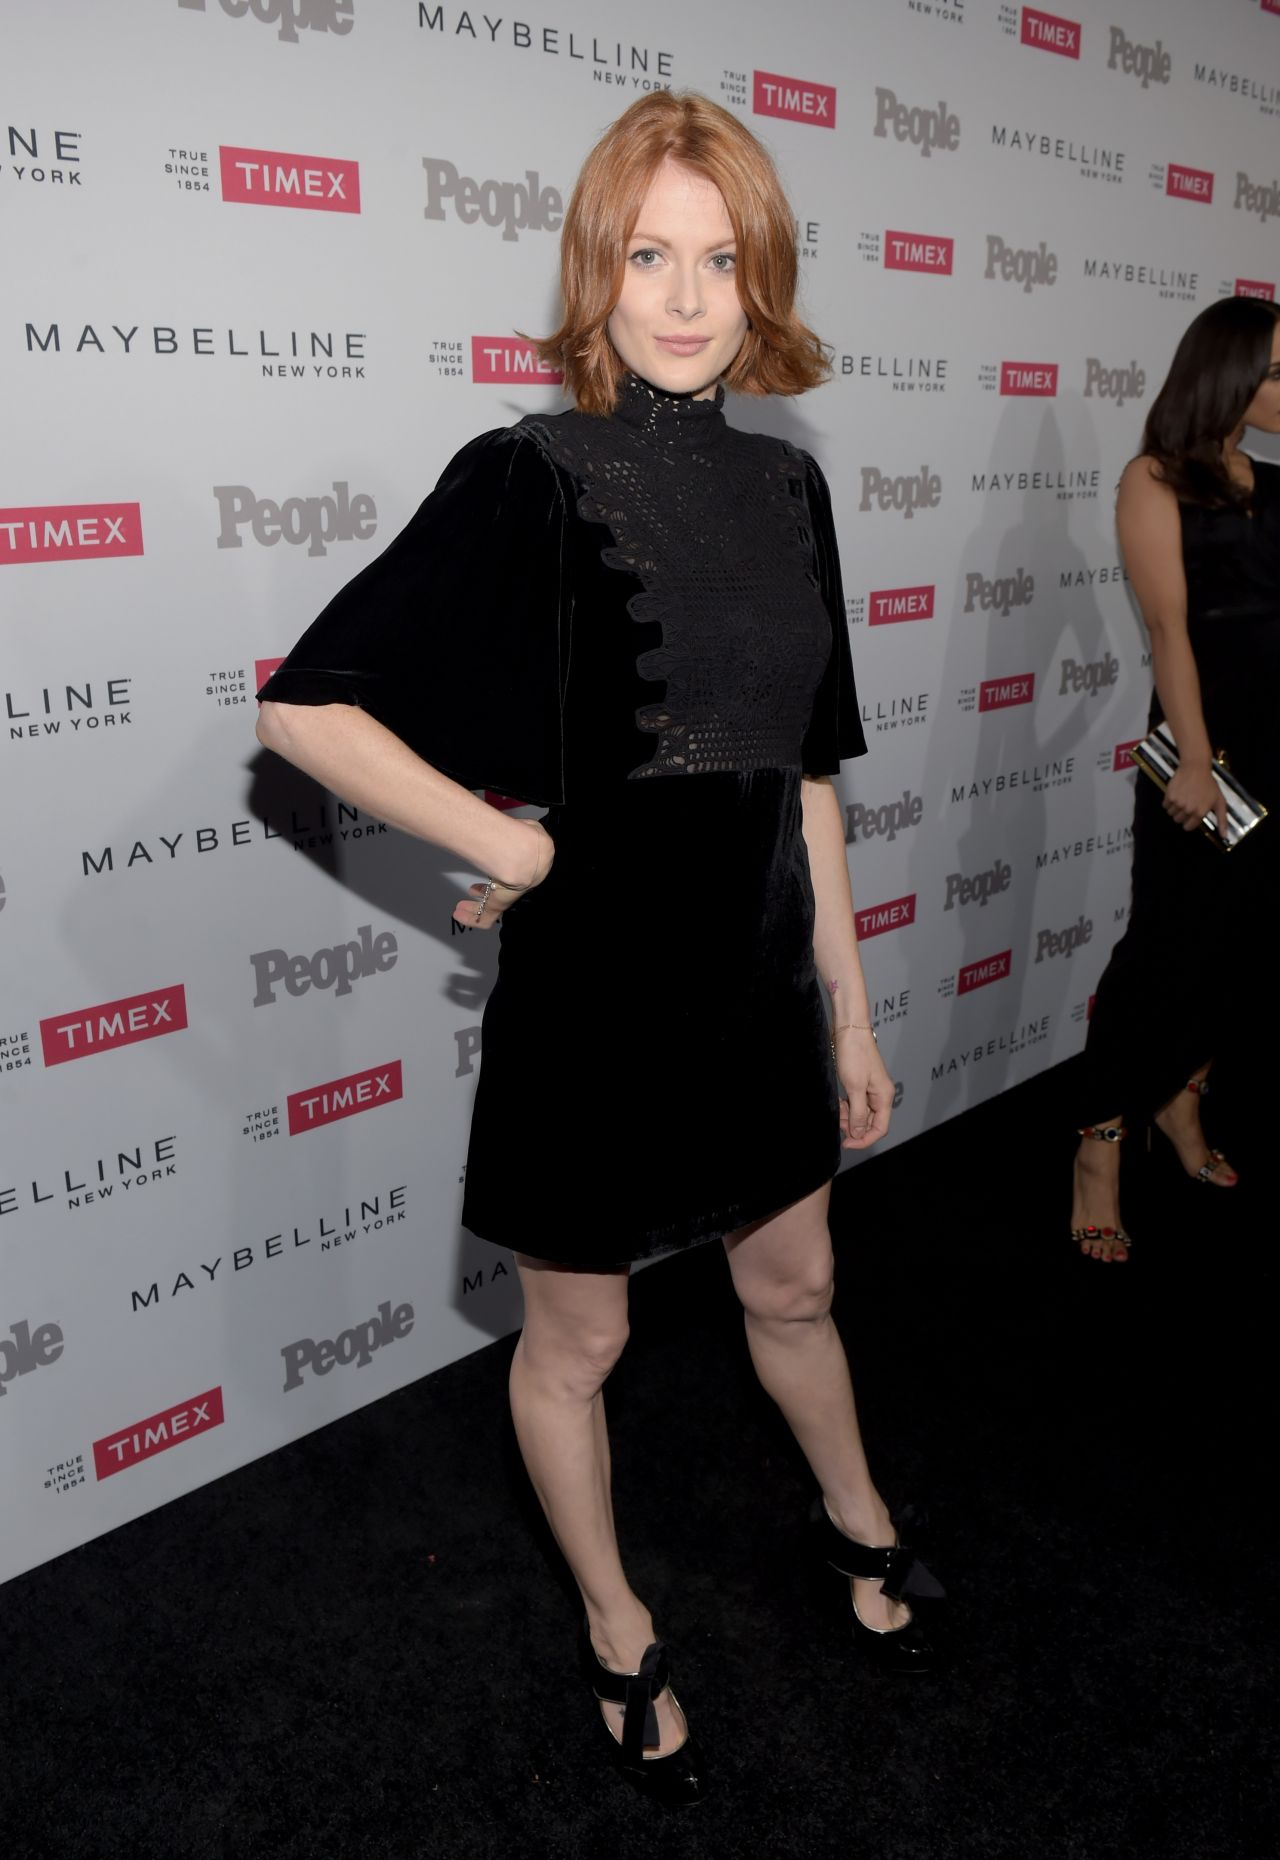 emily beecham actressemily beecham gif, emily beecham actress, emily beecham martial arts, emily beecham fansite, emily beecham imdb, emily beecham instagram, emily beecham into the badlands, emily beecham twitter, emily beecham tumblr, emily beecham measurements, emily beecham 28 weeks later, emily beecham mr skin